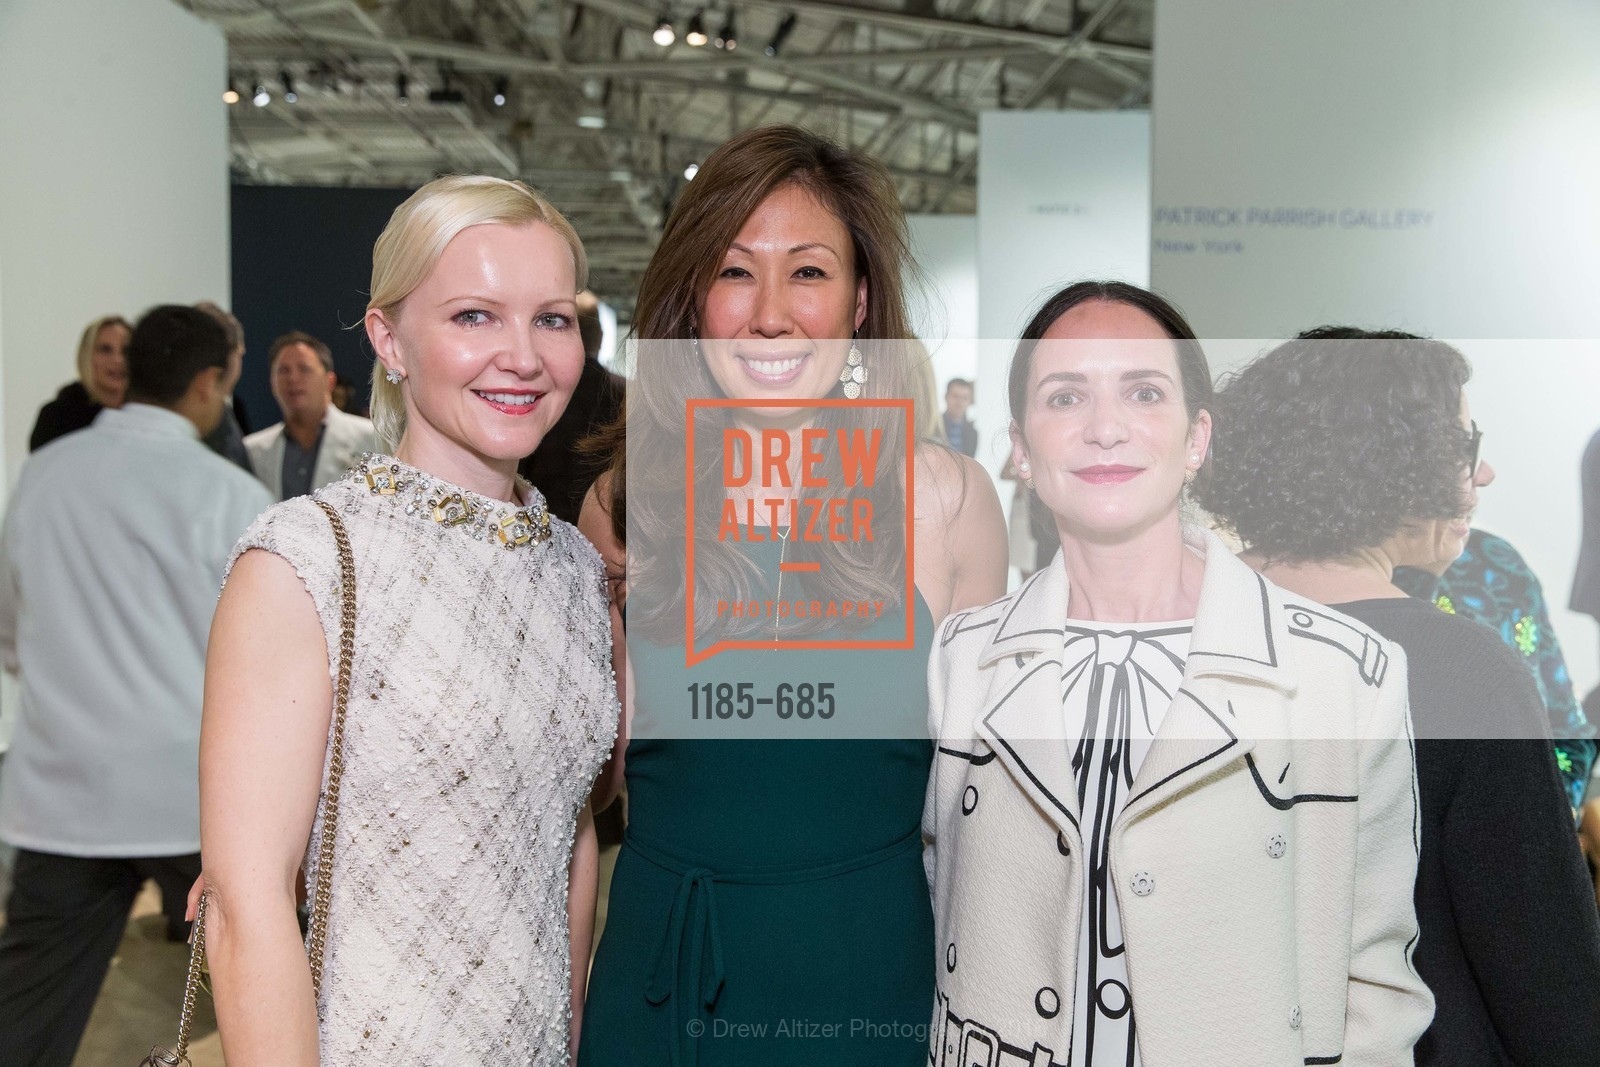 Nathalie Delrue-McGuire, Joy Boatwright, Courtney Dallaire, FOG Design+Art Preview Gala, Fort Mason Center Festival Pavilion, January 13th, 2016,Drew Altizer, Drew Altizer Photography, full-service event agency, private events, San Francisco photographer, photographer California